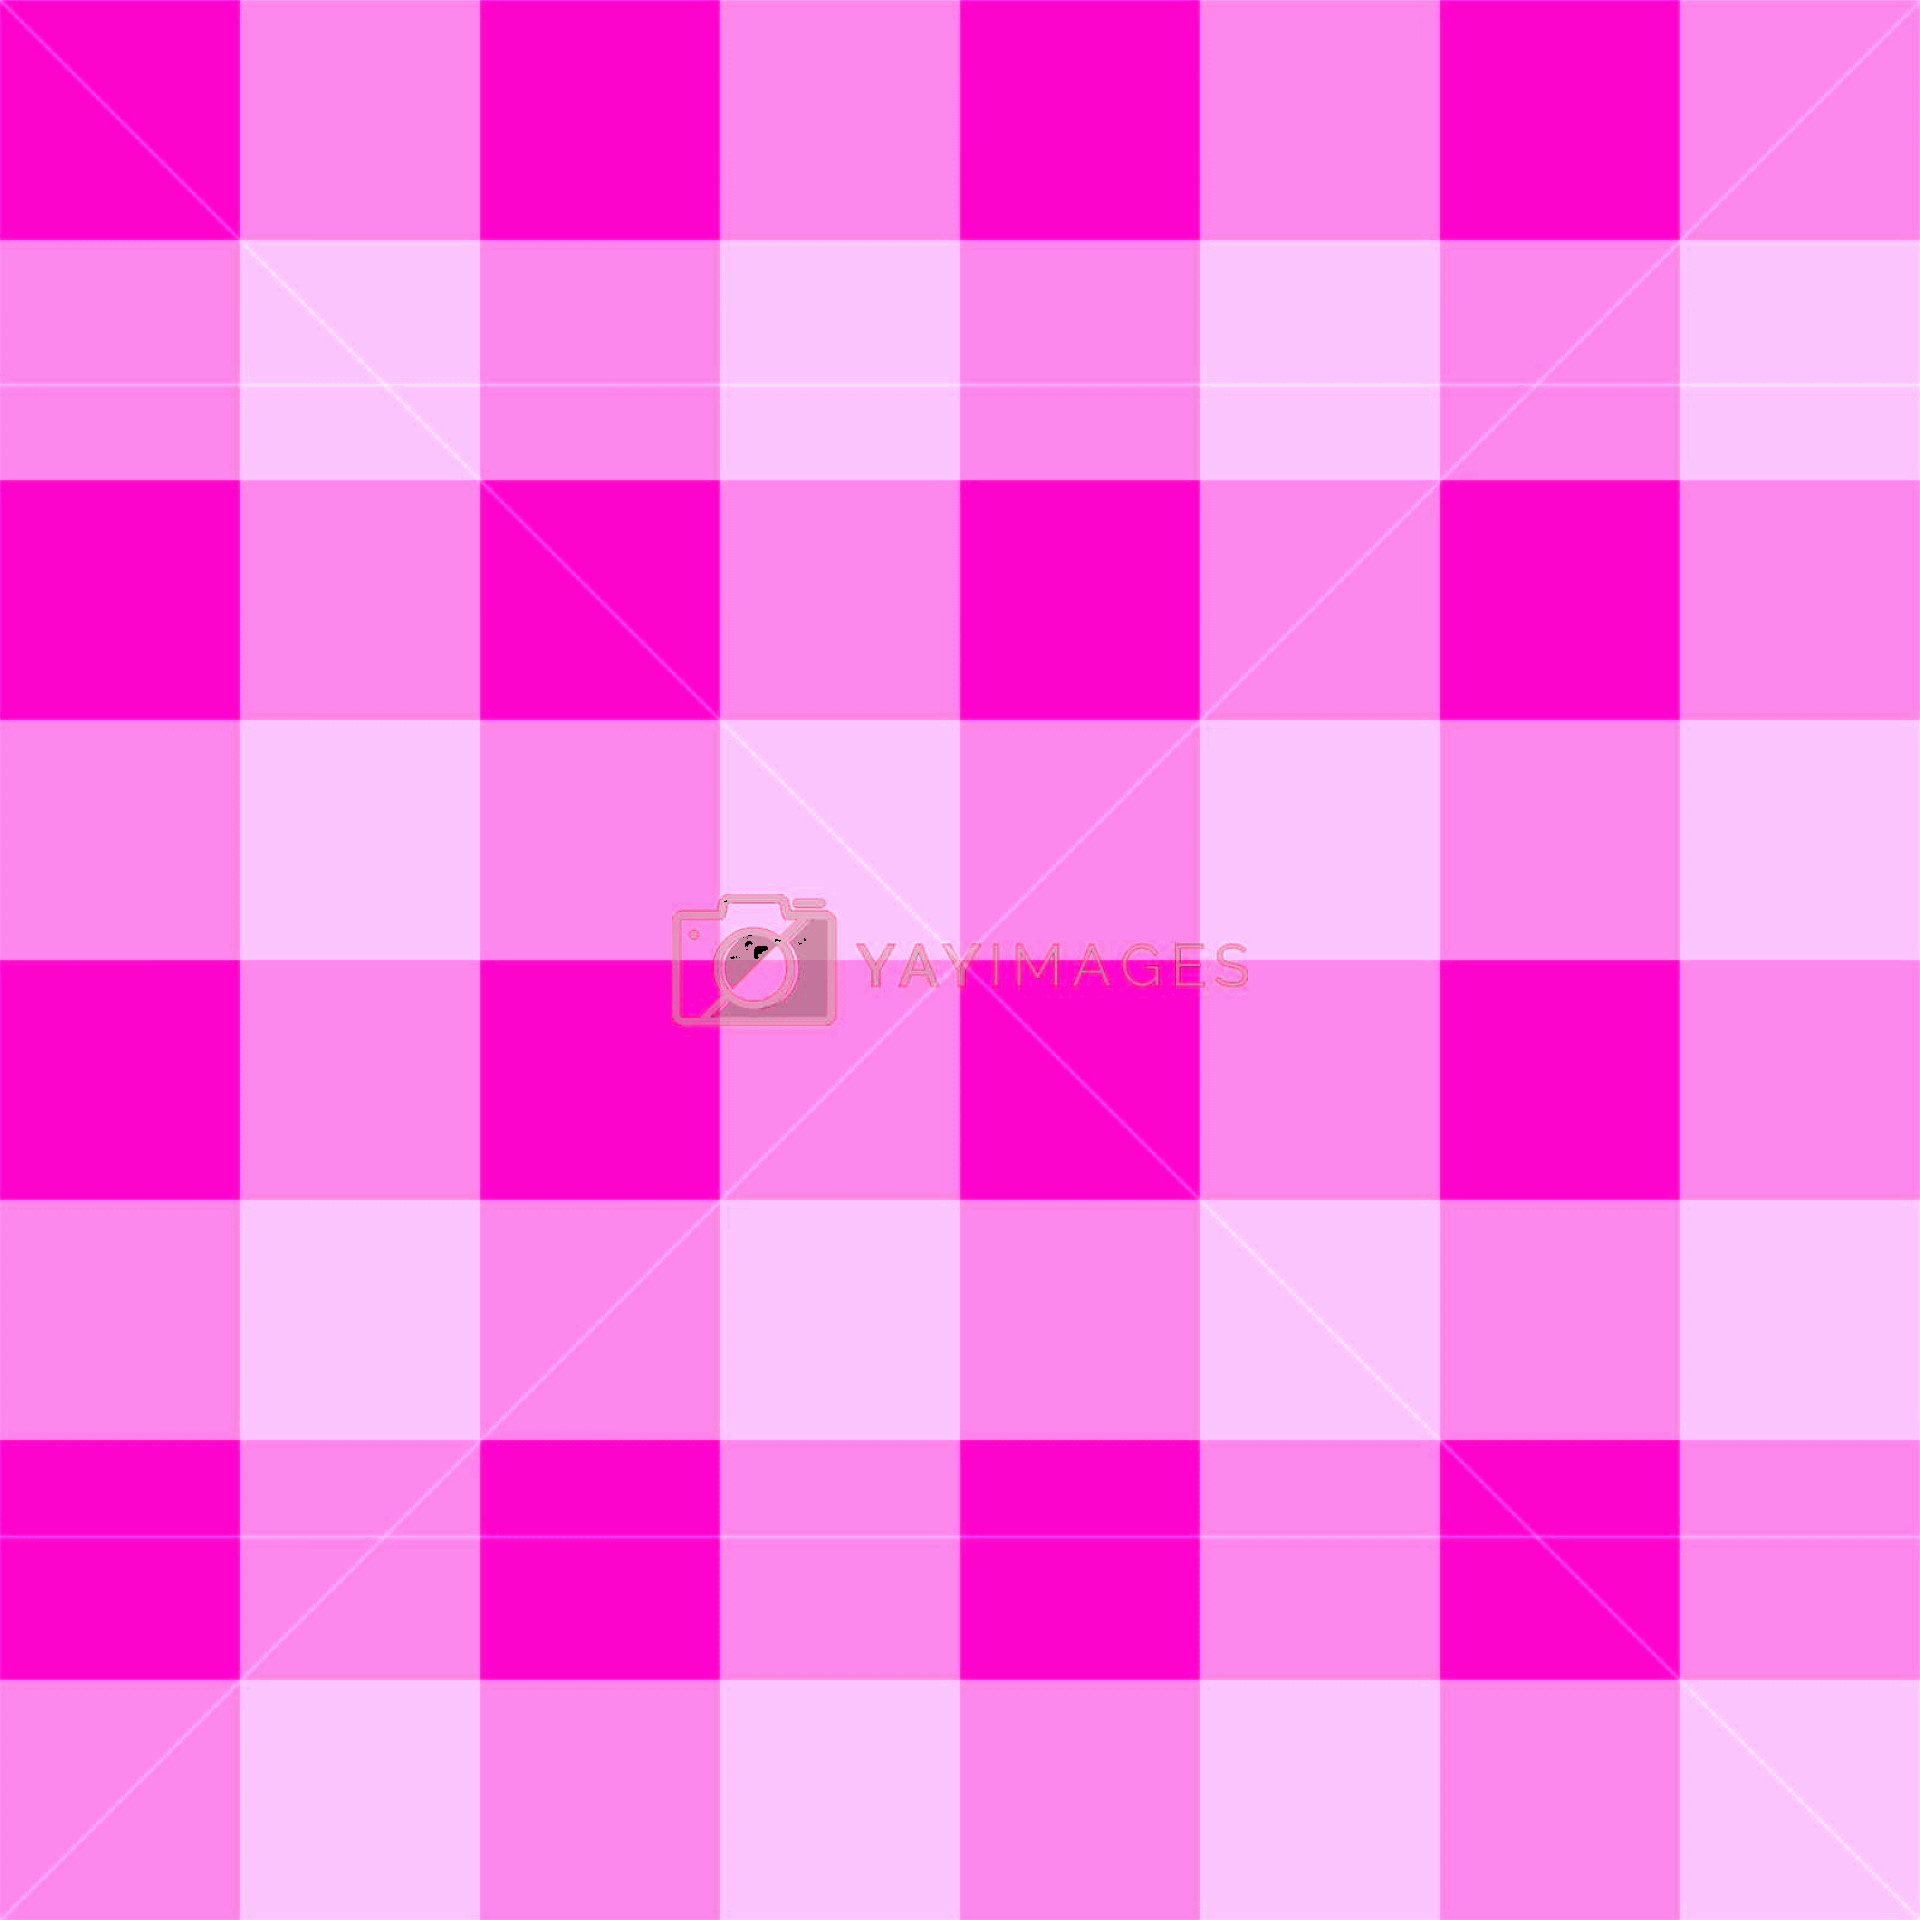 Plaid Vector: Seamless Pink Plaid Vector Background Tile Checkered Pattern Or Grid Texture